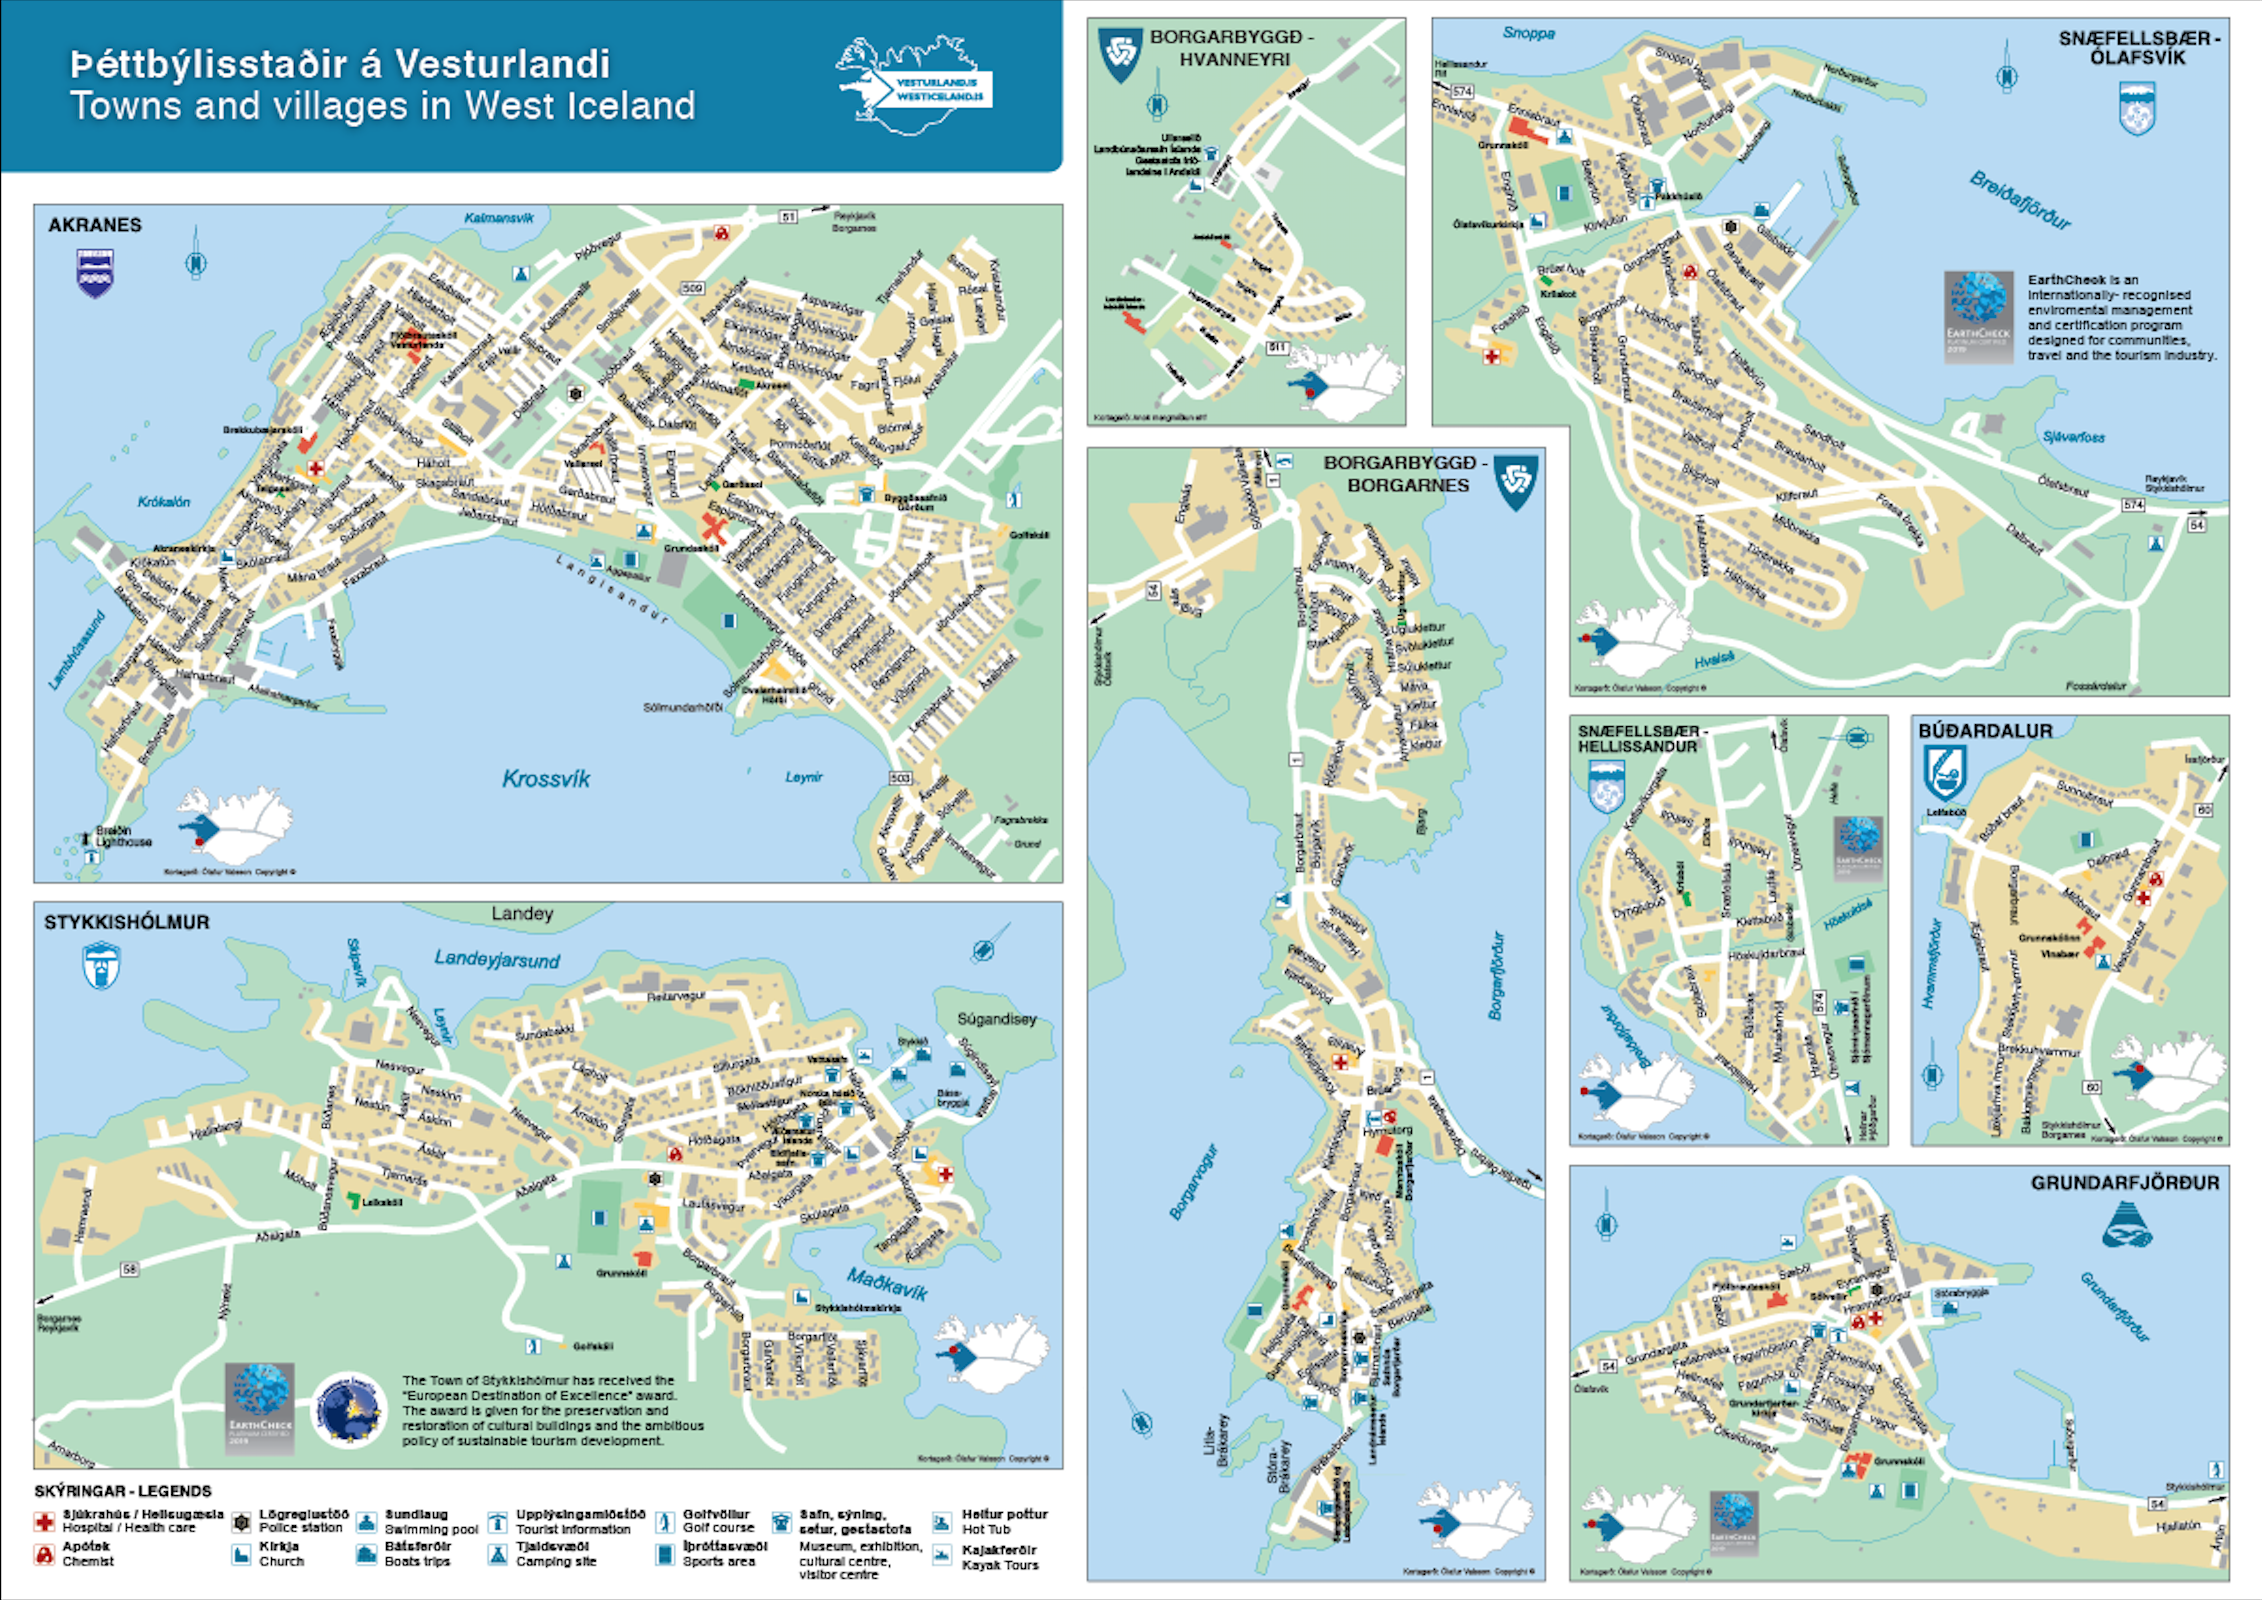 West Iceland Map 2019 | Visit West Iceland on iceland capital reykjavik, iceland waterfalls, iceland tours, iceland attractions, iceland capital population, iceland islands map, iceland animals, iceland reykjavik city map, iceland volcano, iceland scenery, iceland people,